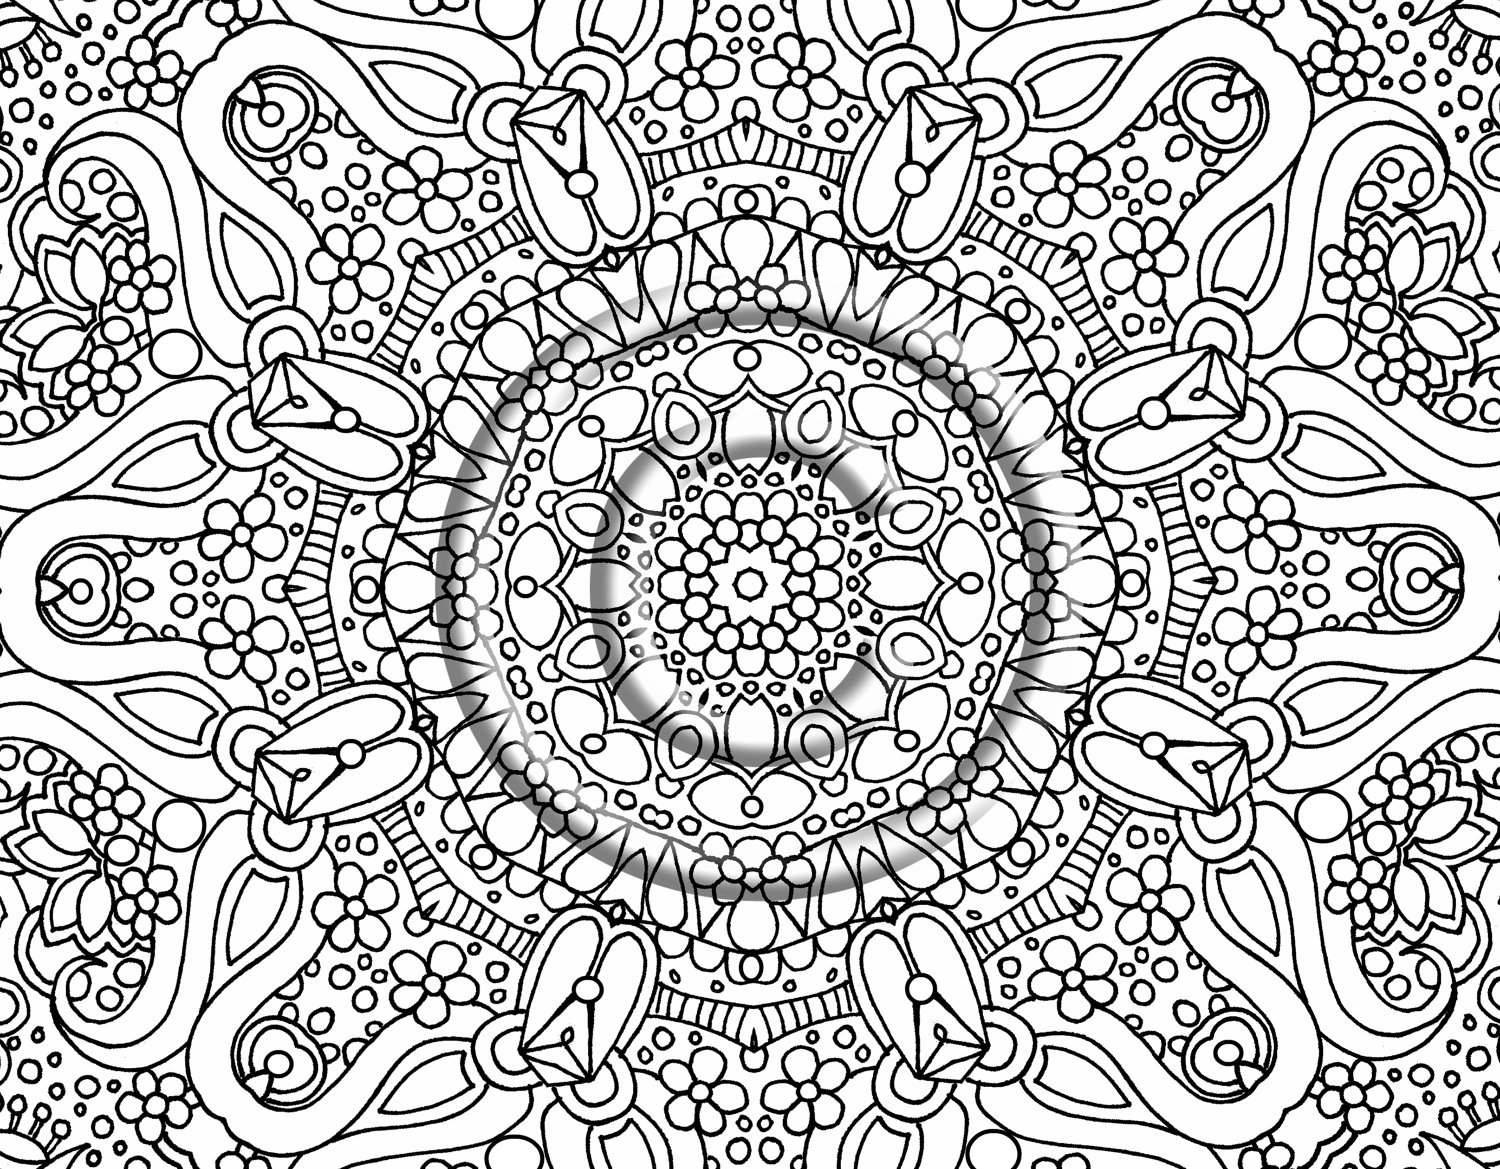 designs for coloring coloring page world paisley flower pattern portrait for coloring designs